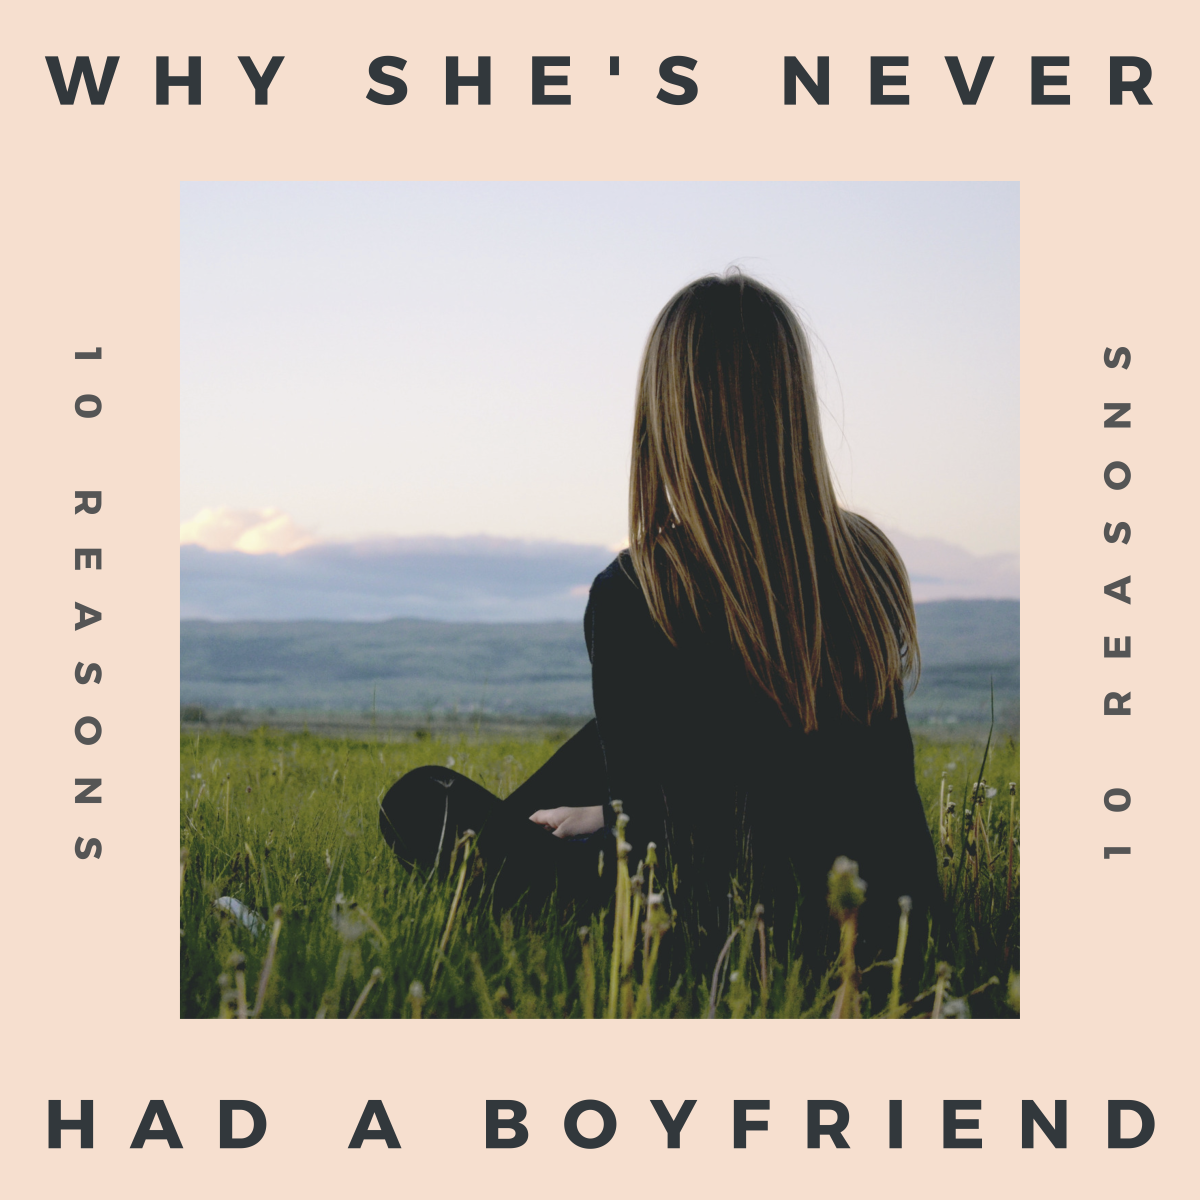 So for whatever reason, the girl you like has never had a boyfriend. There are plenty of possible reasons for this, but here are 10 of the most common.